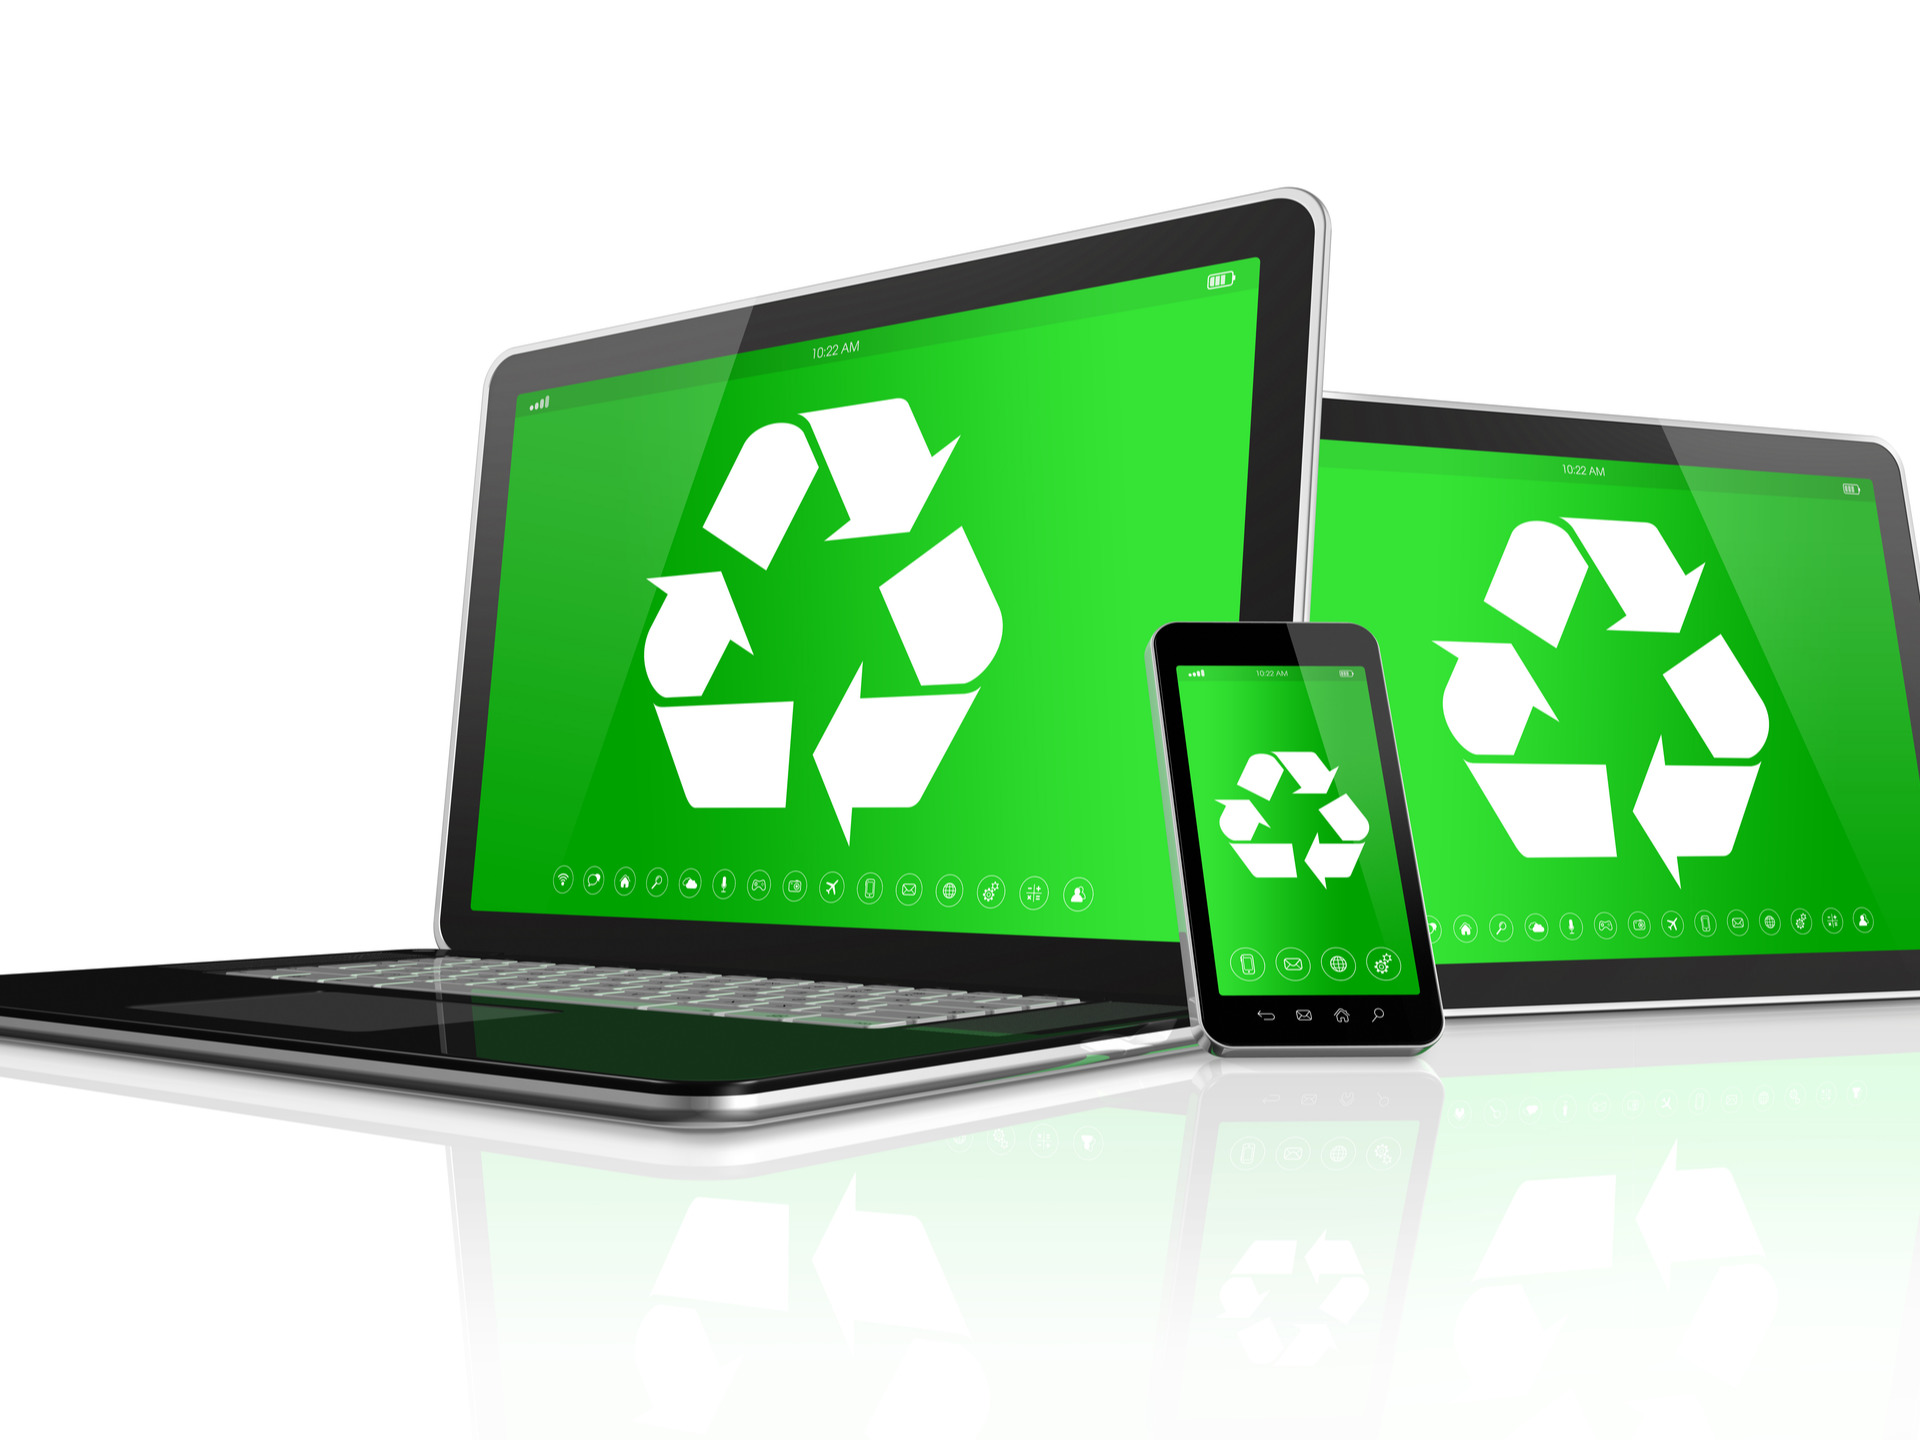 Recycling Laptops, Phones, and Tablets. Promoting E-Waste Recycling